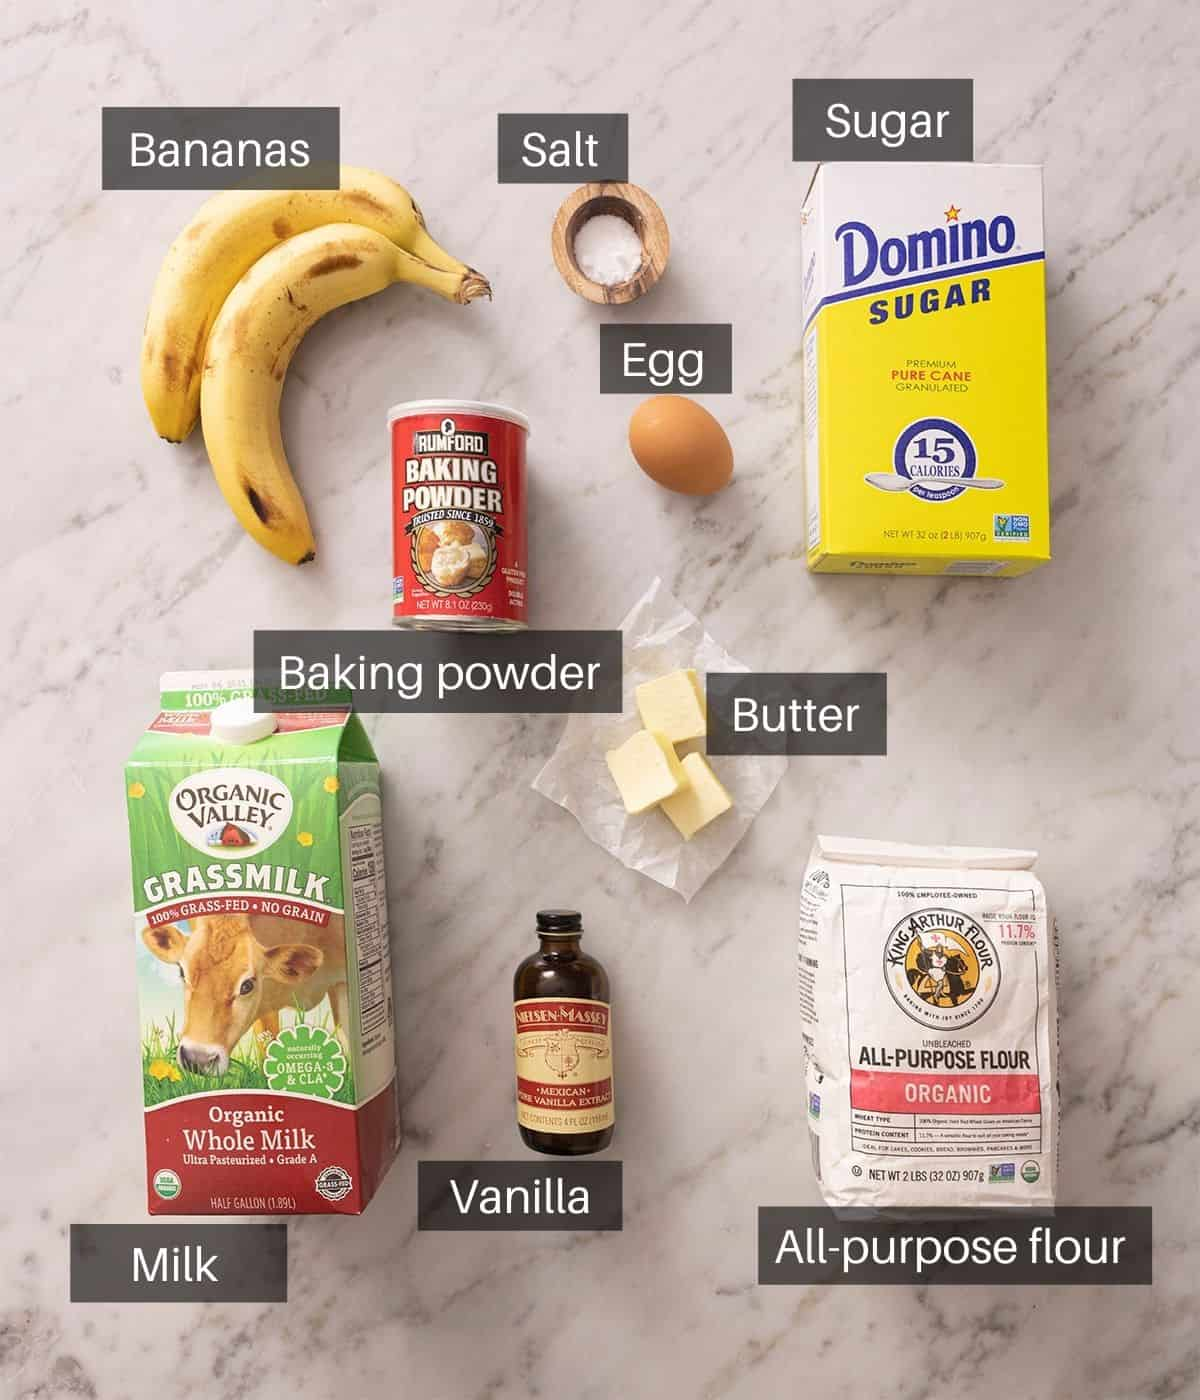 An overhead shot showing all the ingredients you need to make banana pancakes